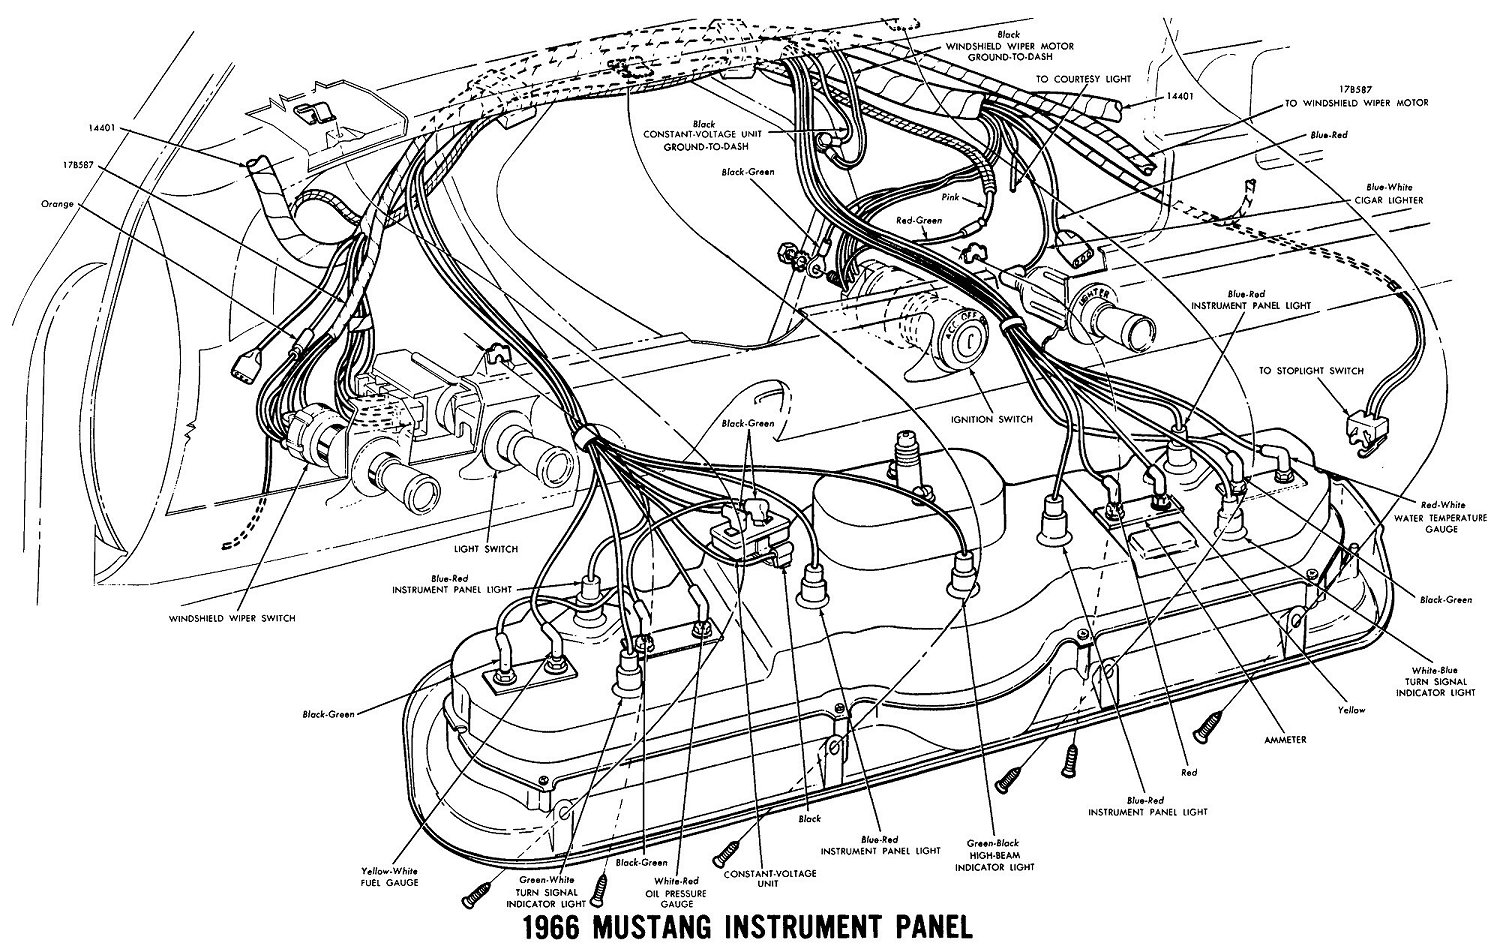 lelu's 66 mustang: 1966 mustang wiring diagrams 1966 mustang wiring diagrams 1966 mustang electrical diagrams #2